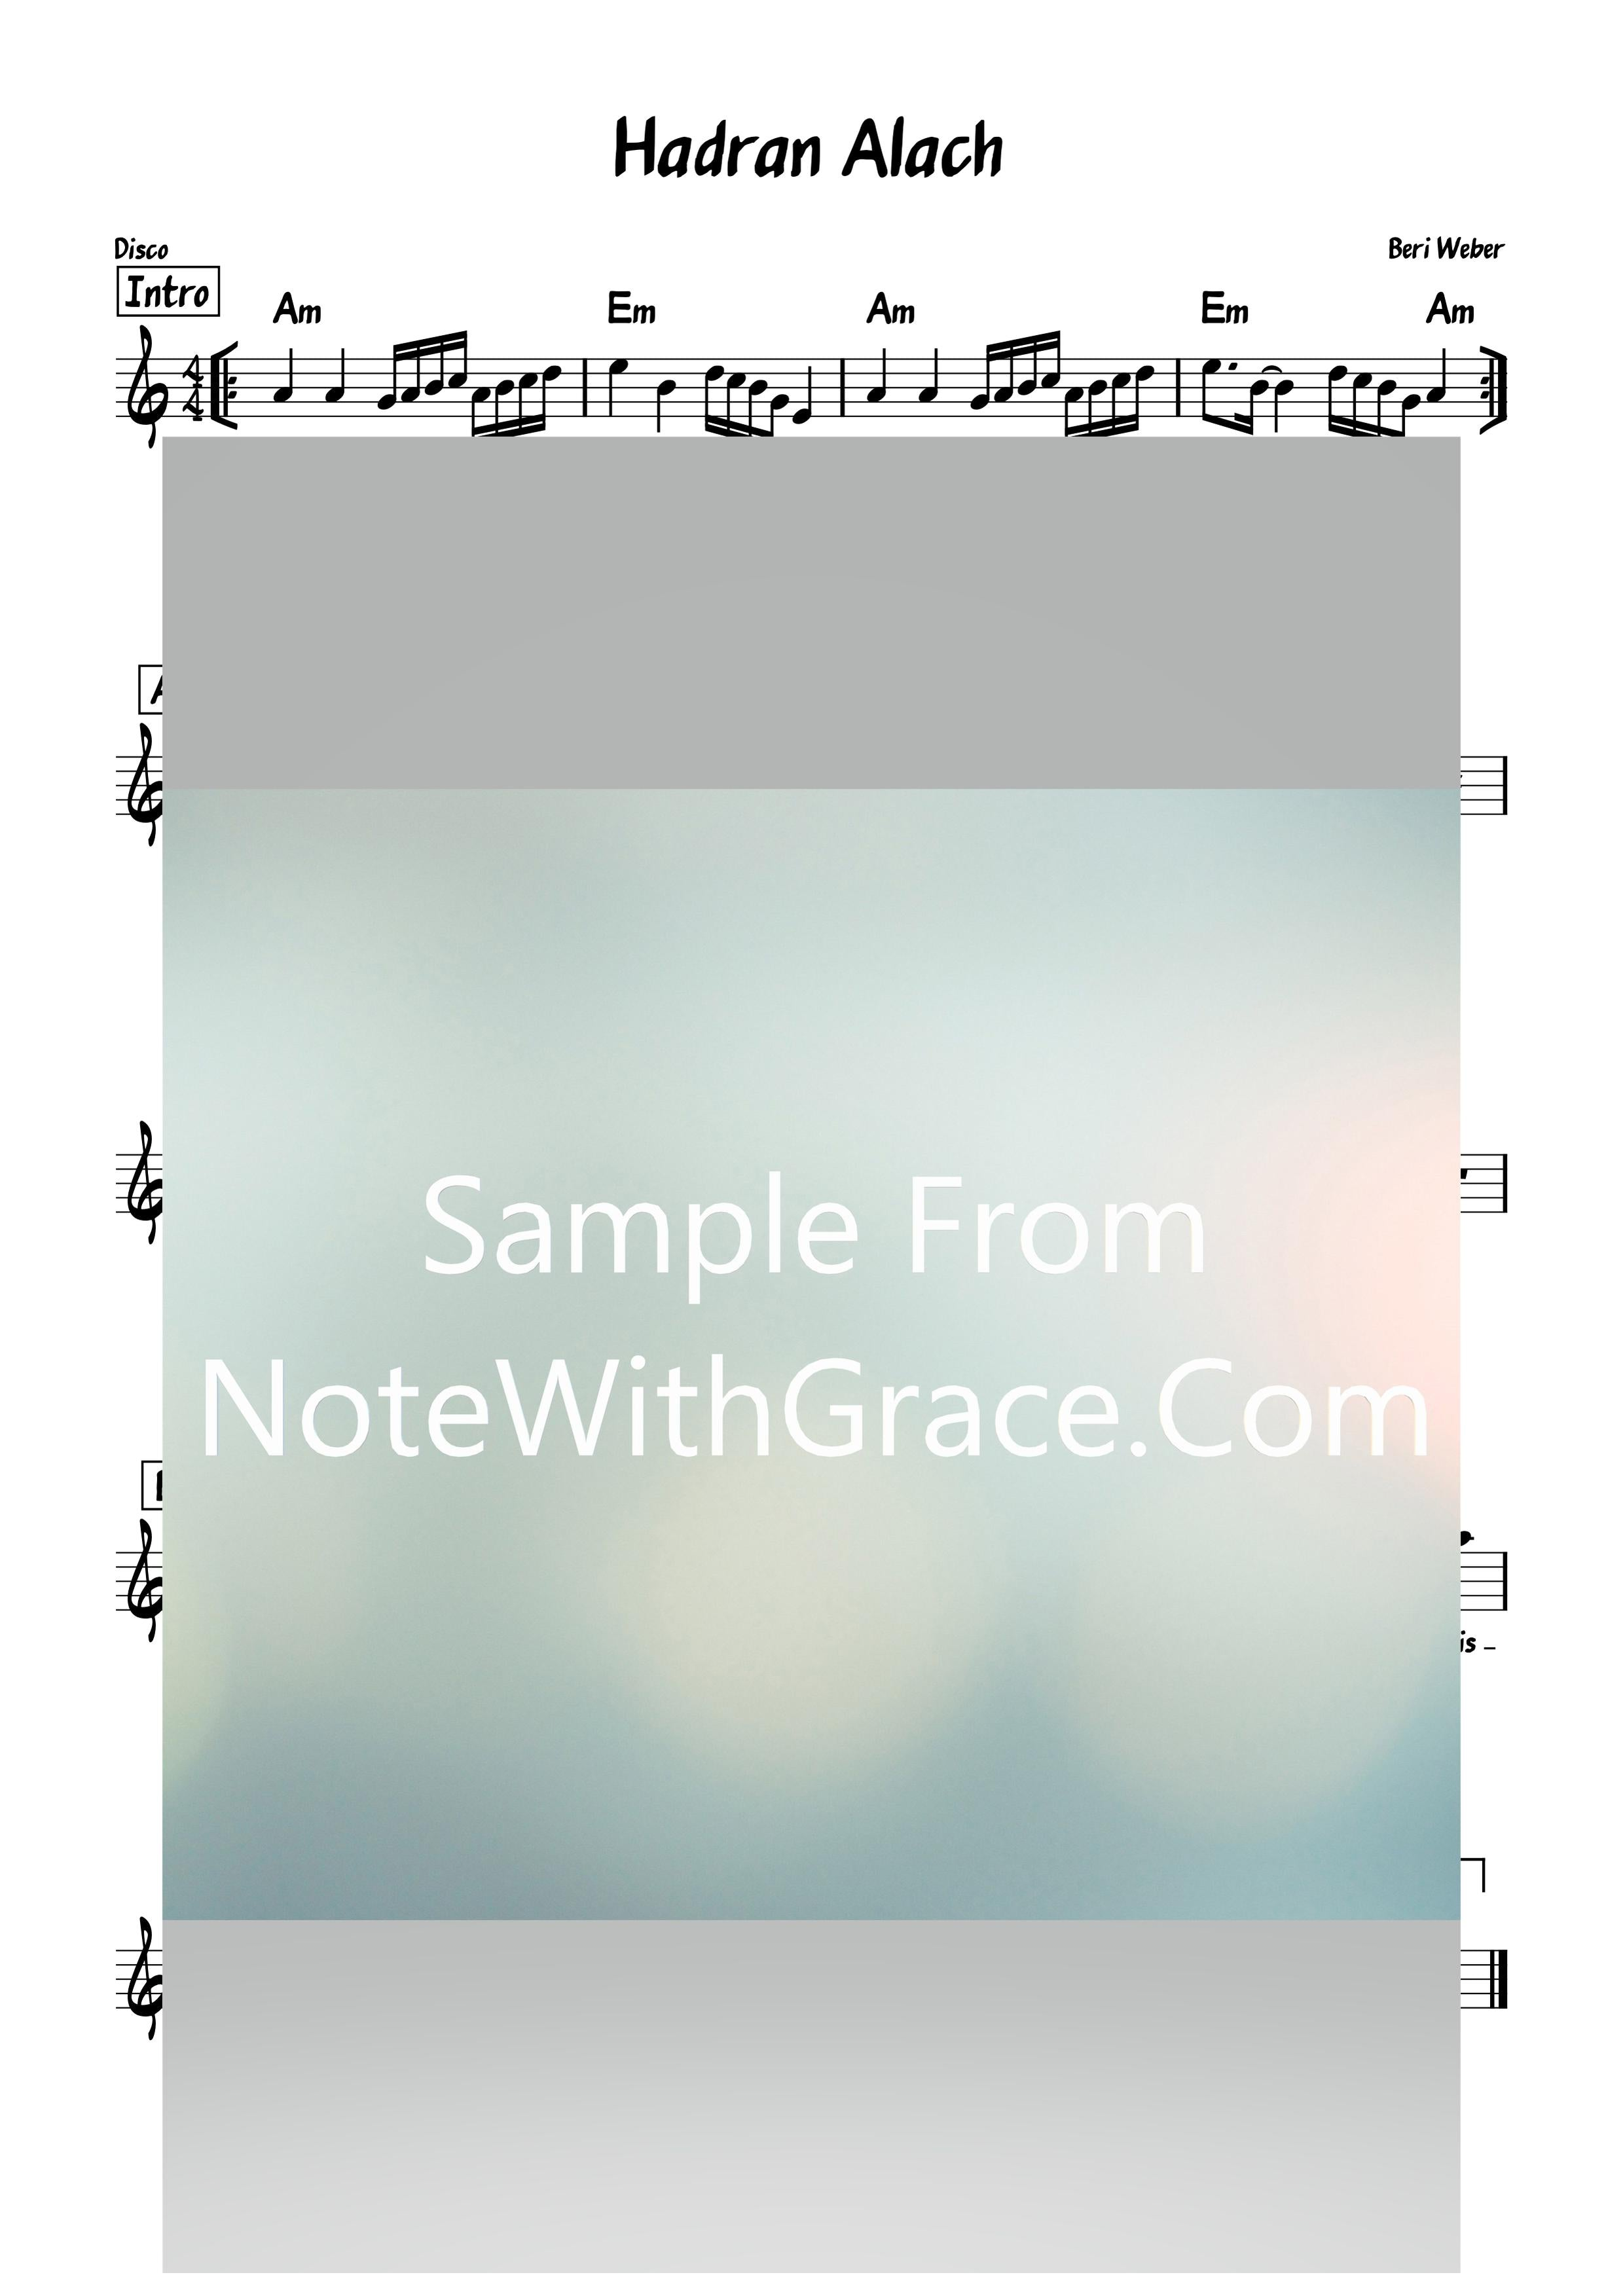 Hadran - הדרן Lead Sheet (Beri Weber) Single 2019-Sheet music-NoteWithGrace.com